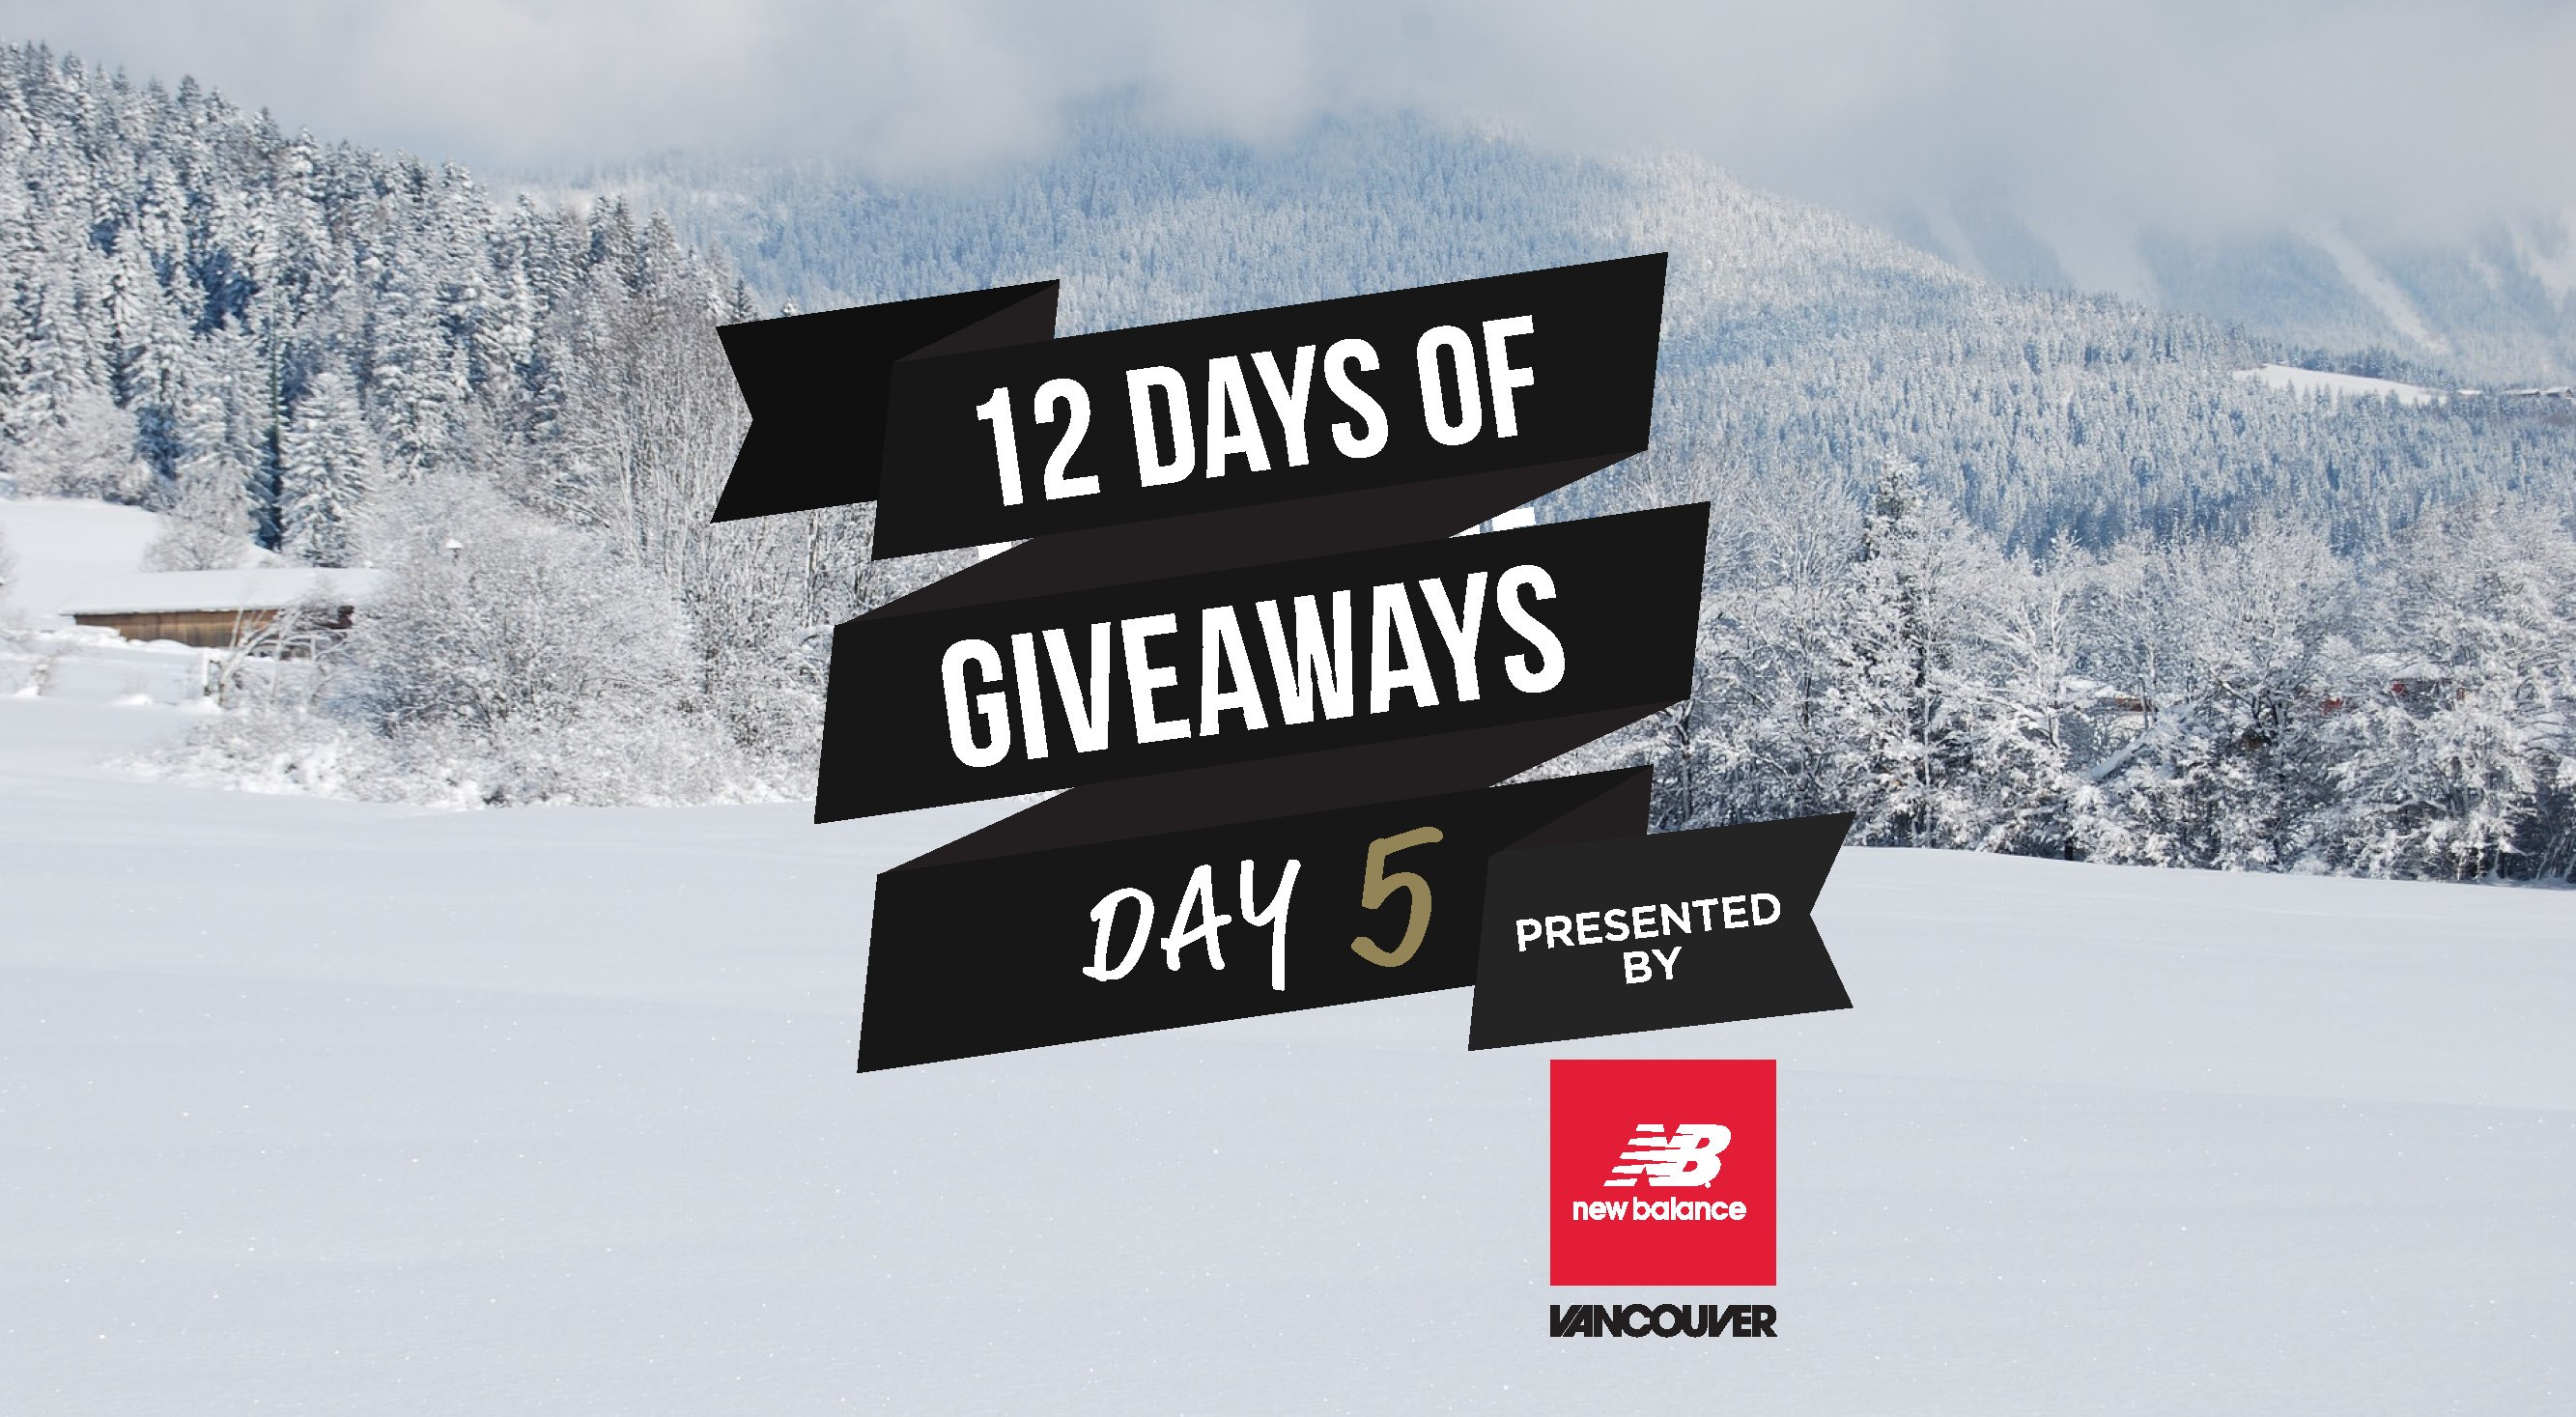 12 Days of Giveaways: Get a gift film buffs will love